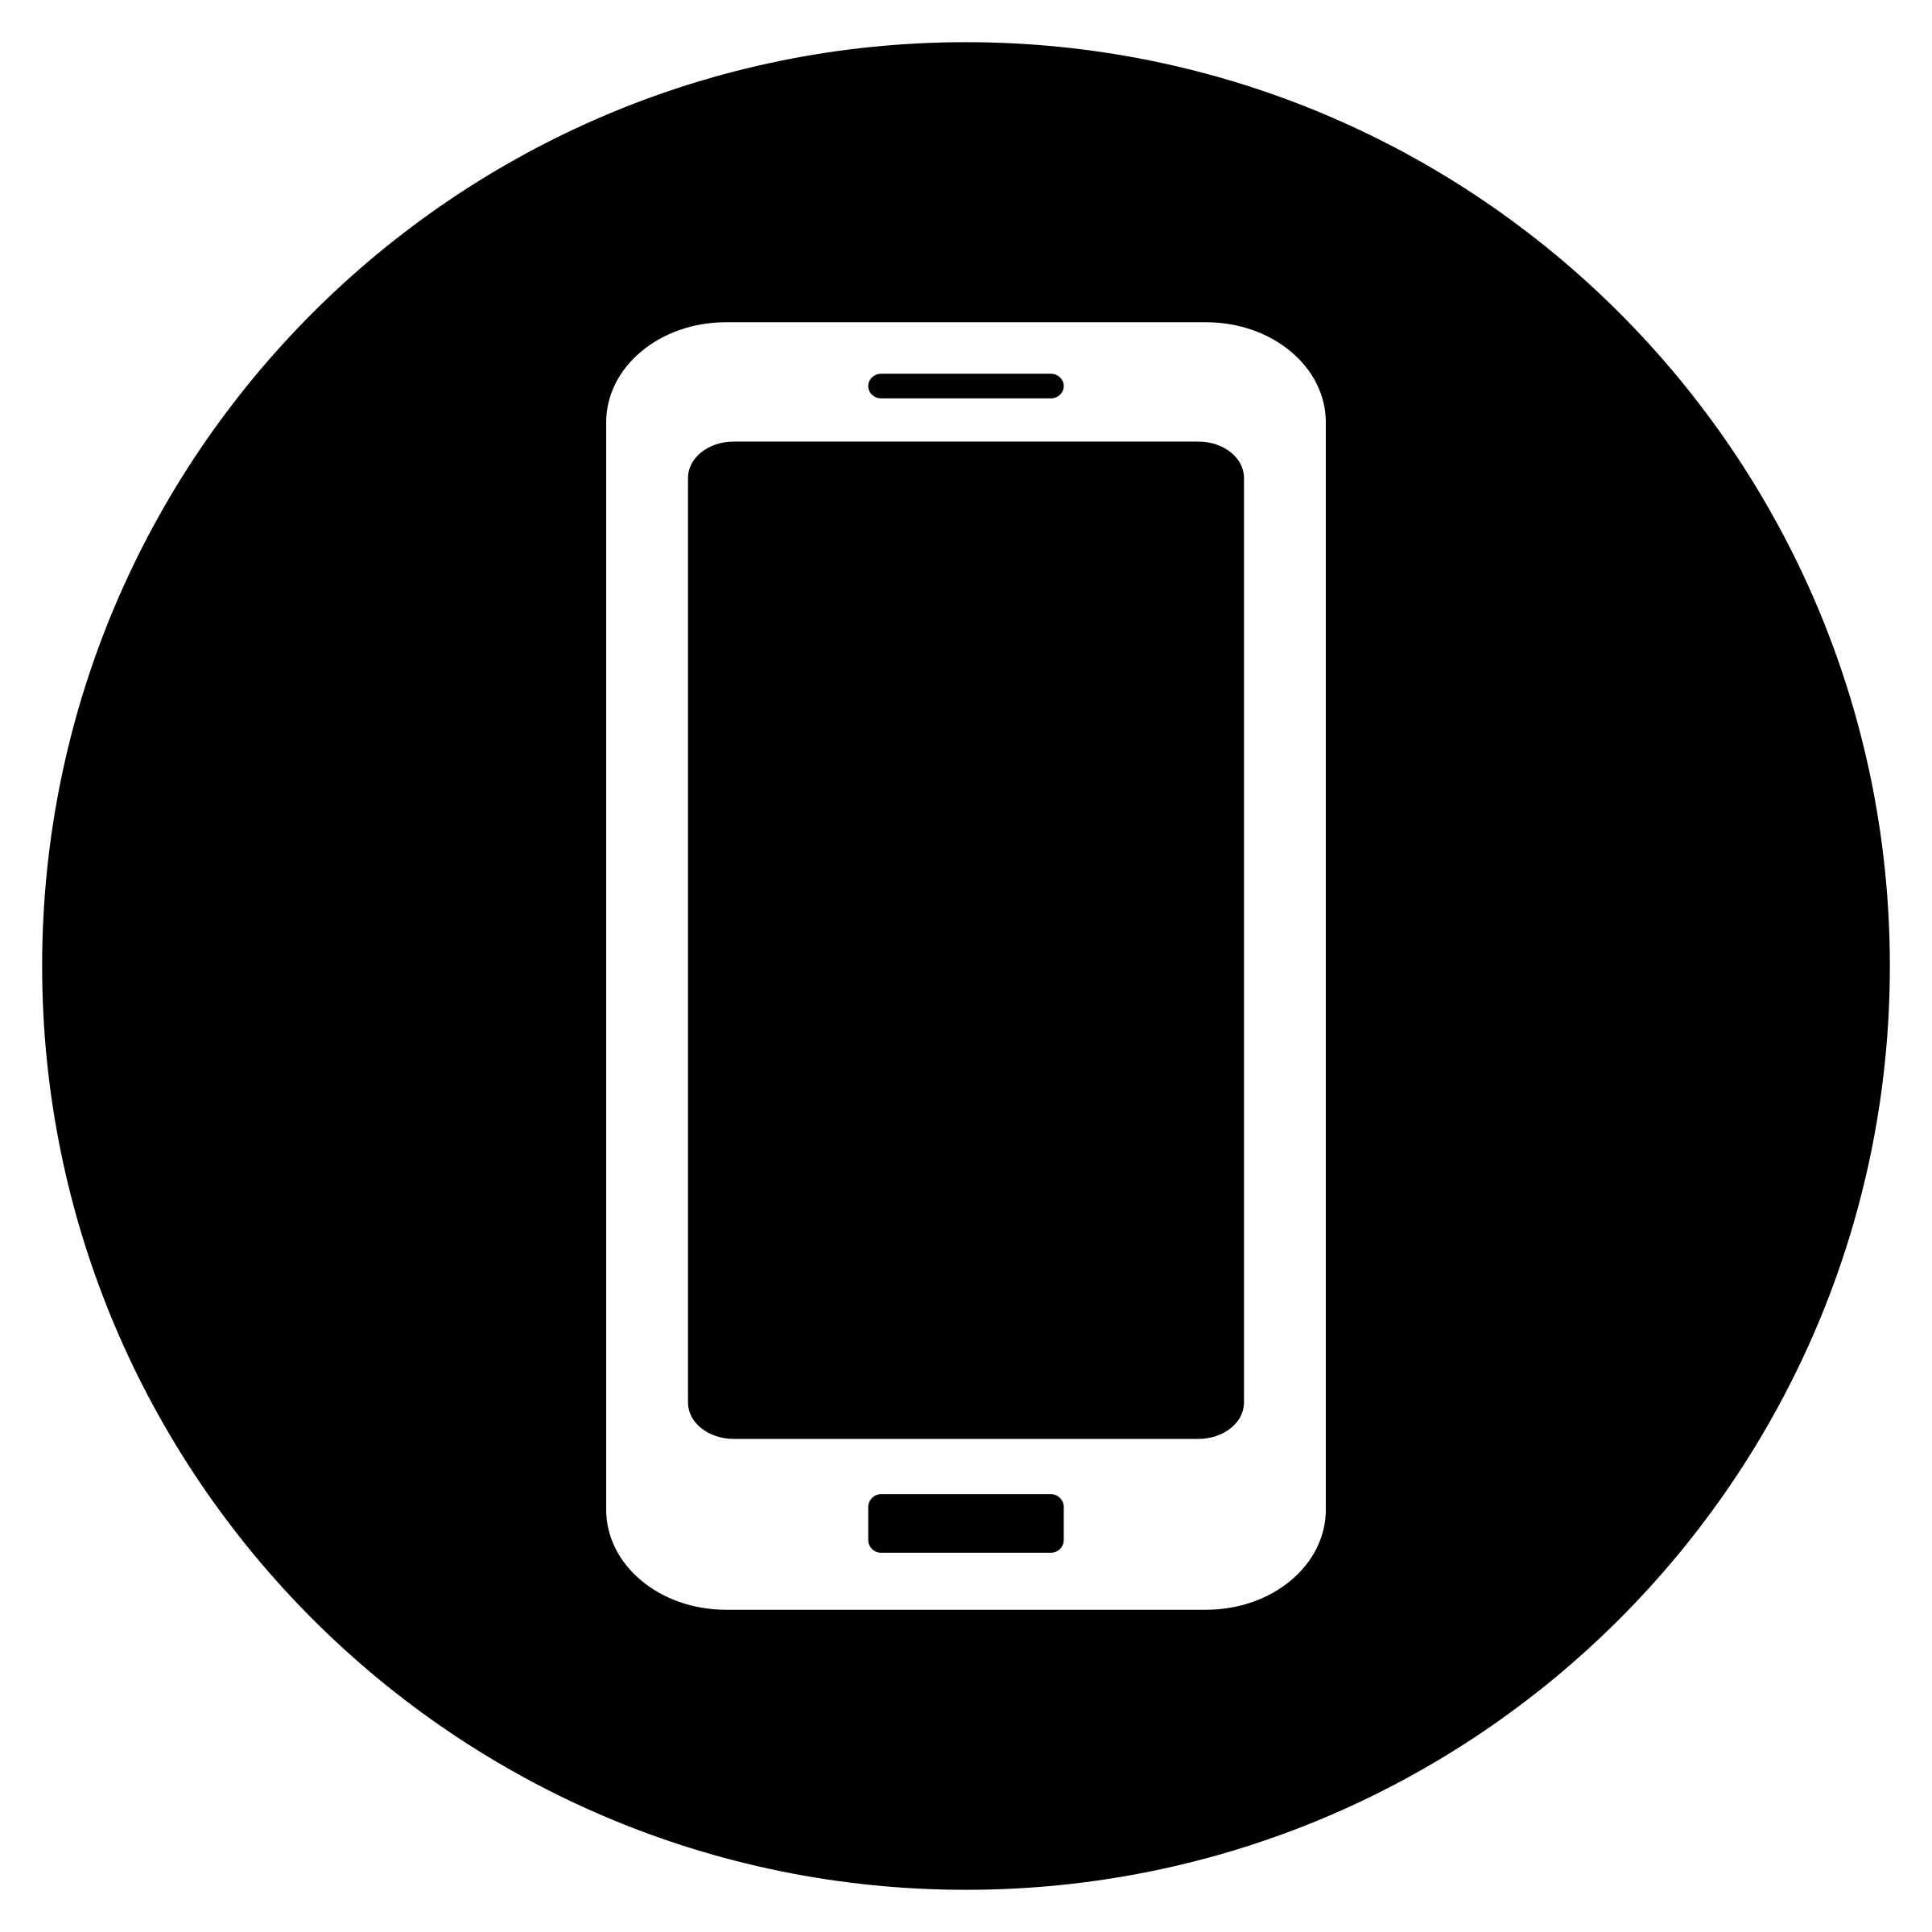 Mobile Icon - White on Black by rygle